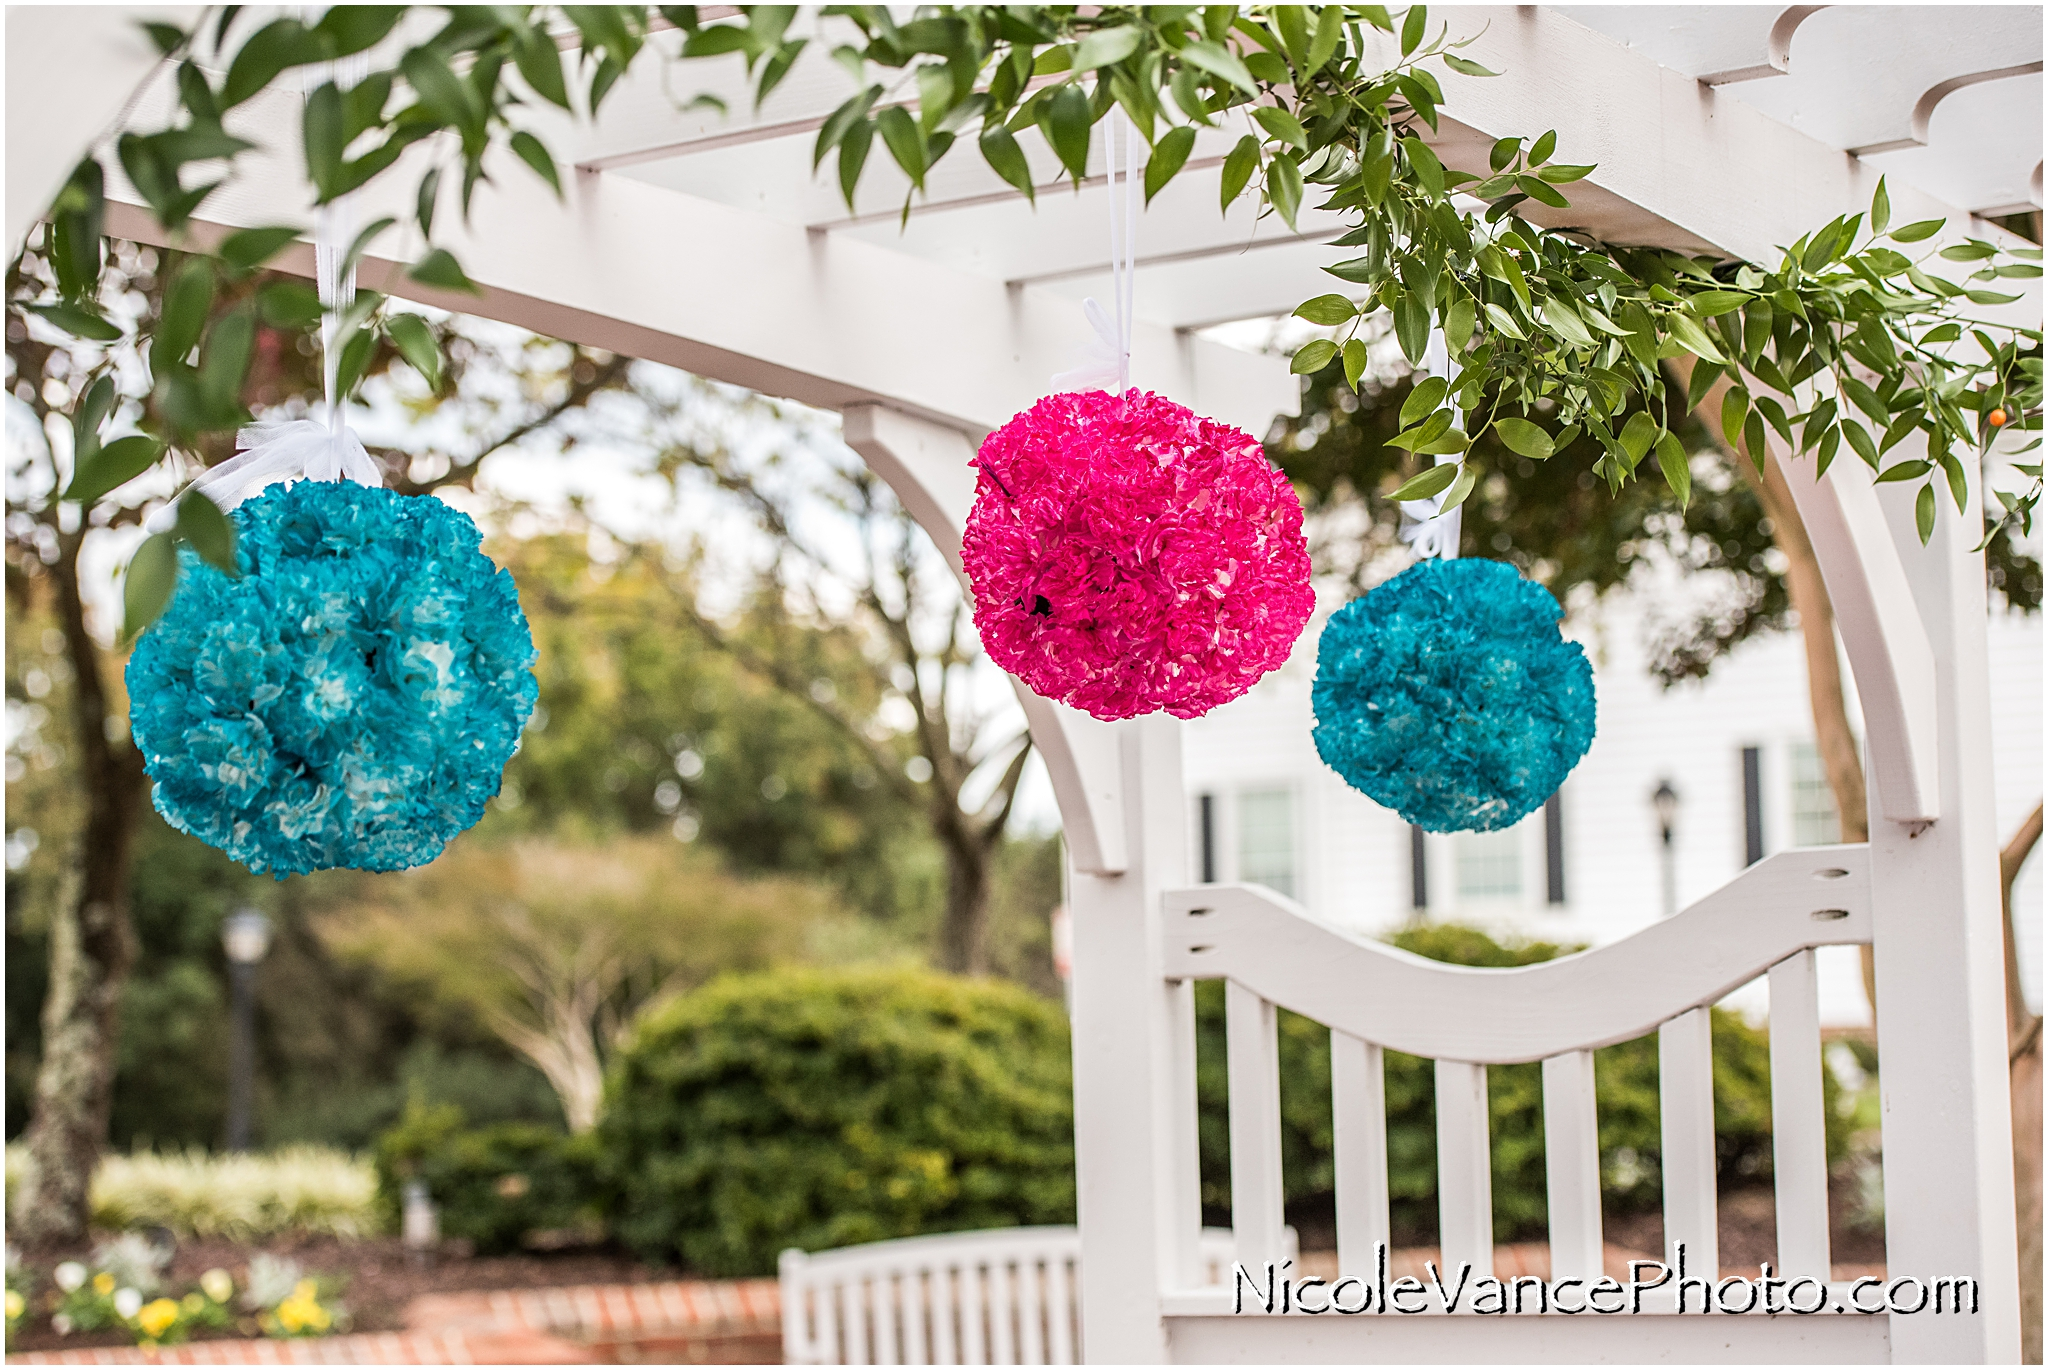 Floral Pomander Balls decorate the pergola at the ceremony site at Virginia Crossings.